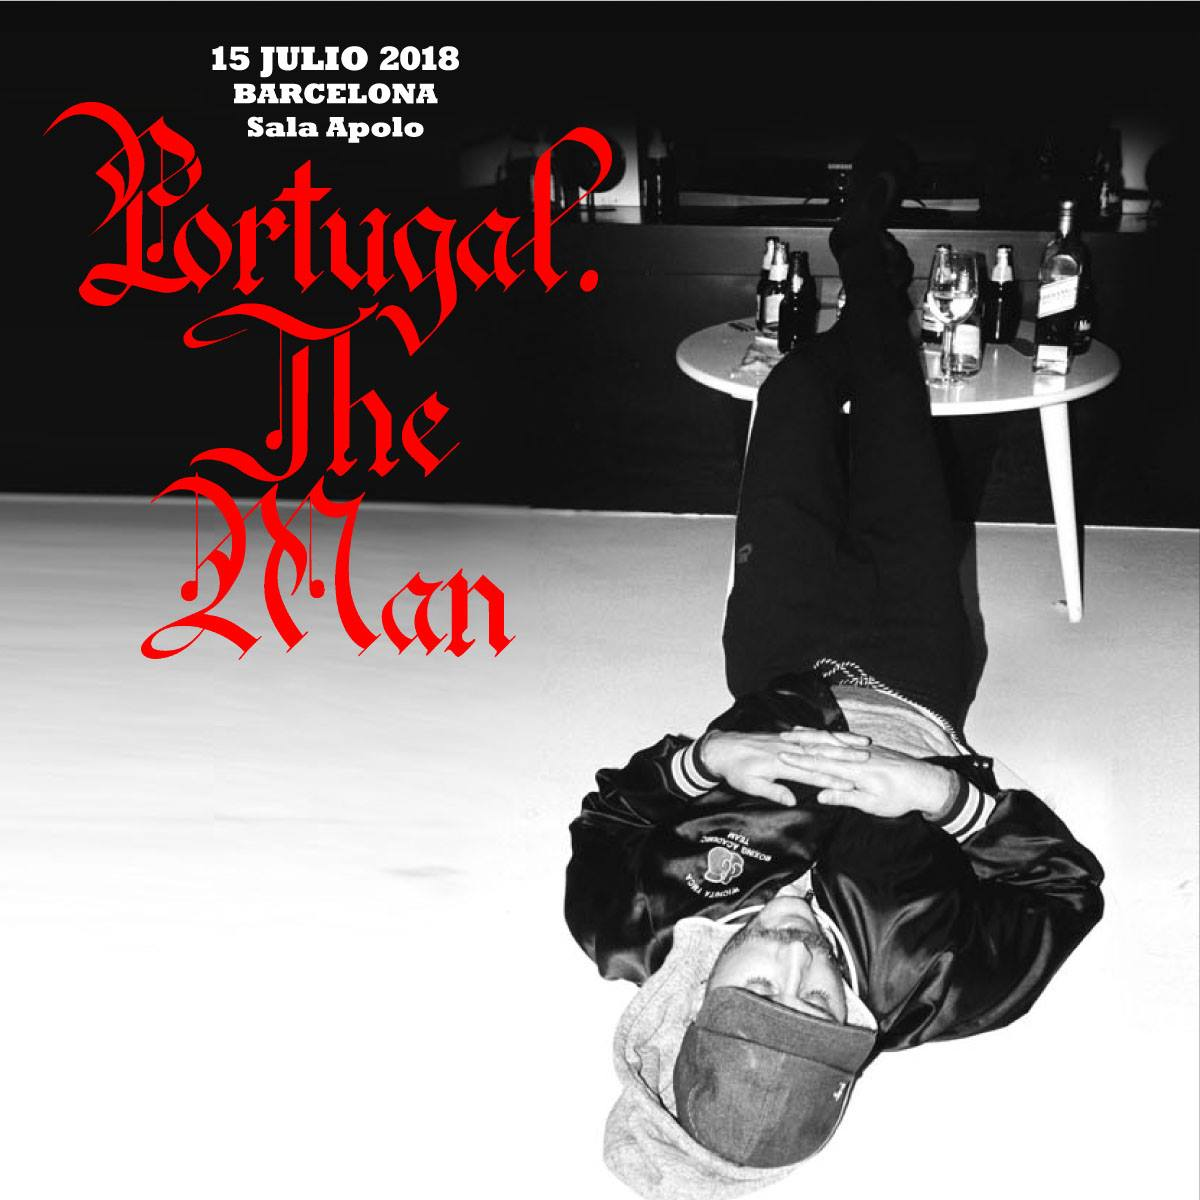 portugal the man barcelona concierto 2018